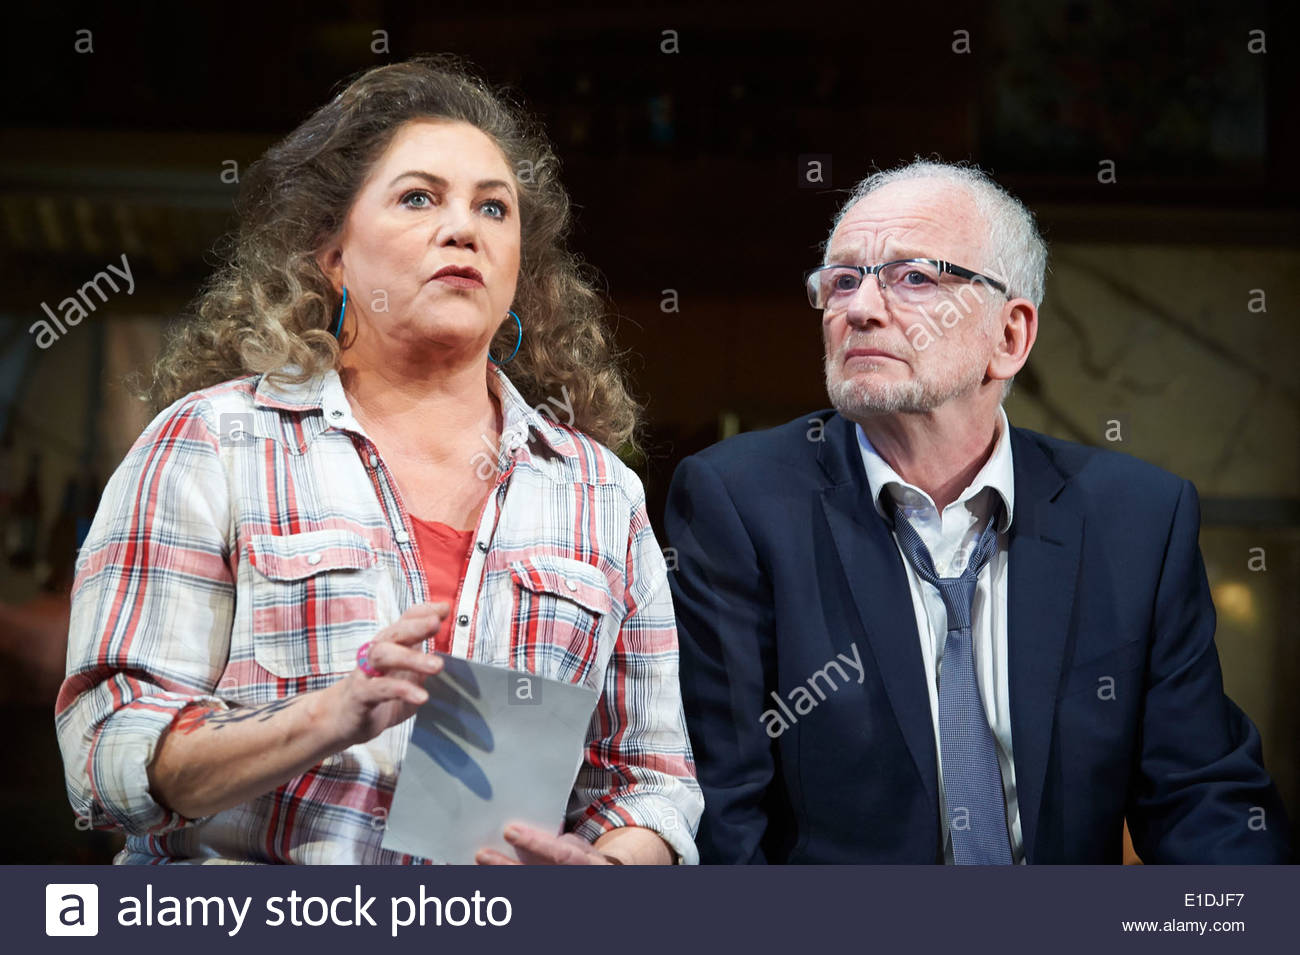 Bakersfield Mist by Stephen Sachs, directed by Polly Teale. With Kathleen Turner as Maude Gutman, Ian McDiarmid as Lionel Percy. - Stock Image